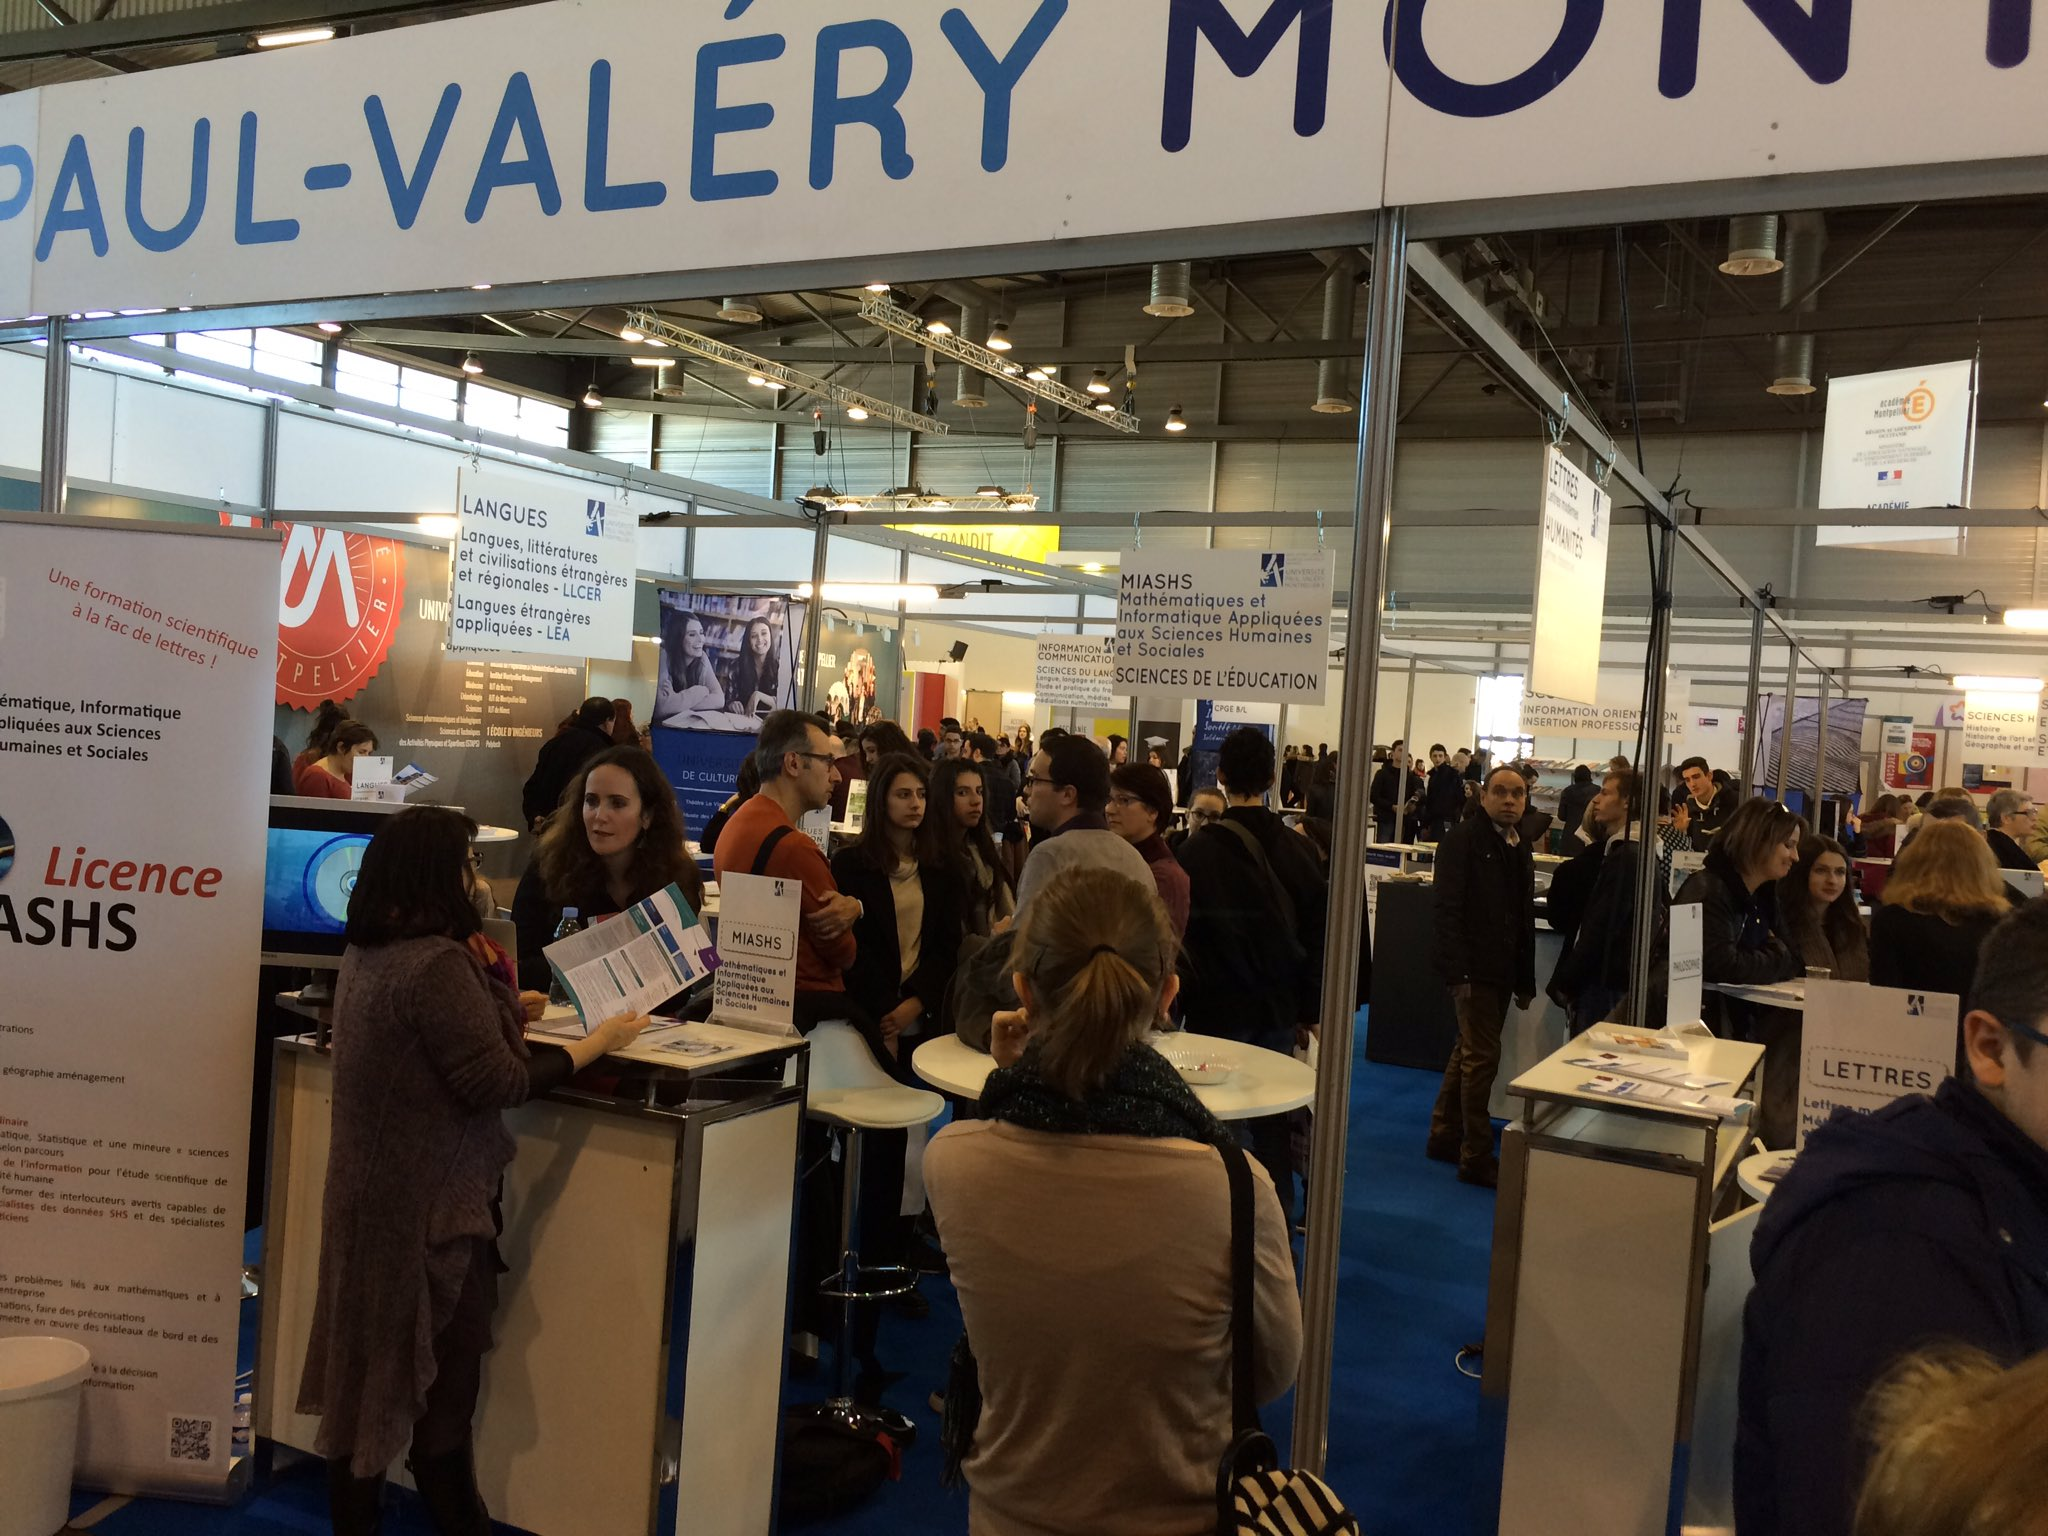 Salon étudiant Montpellier Yann Bisiou On Twitter Quotgrosse Affluence Au Salon De L